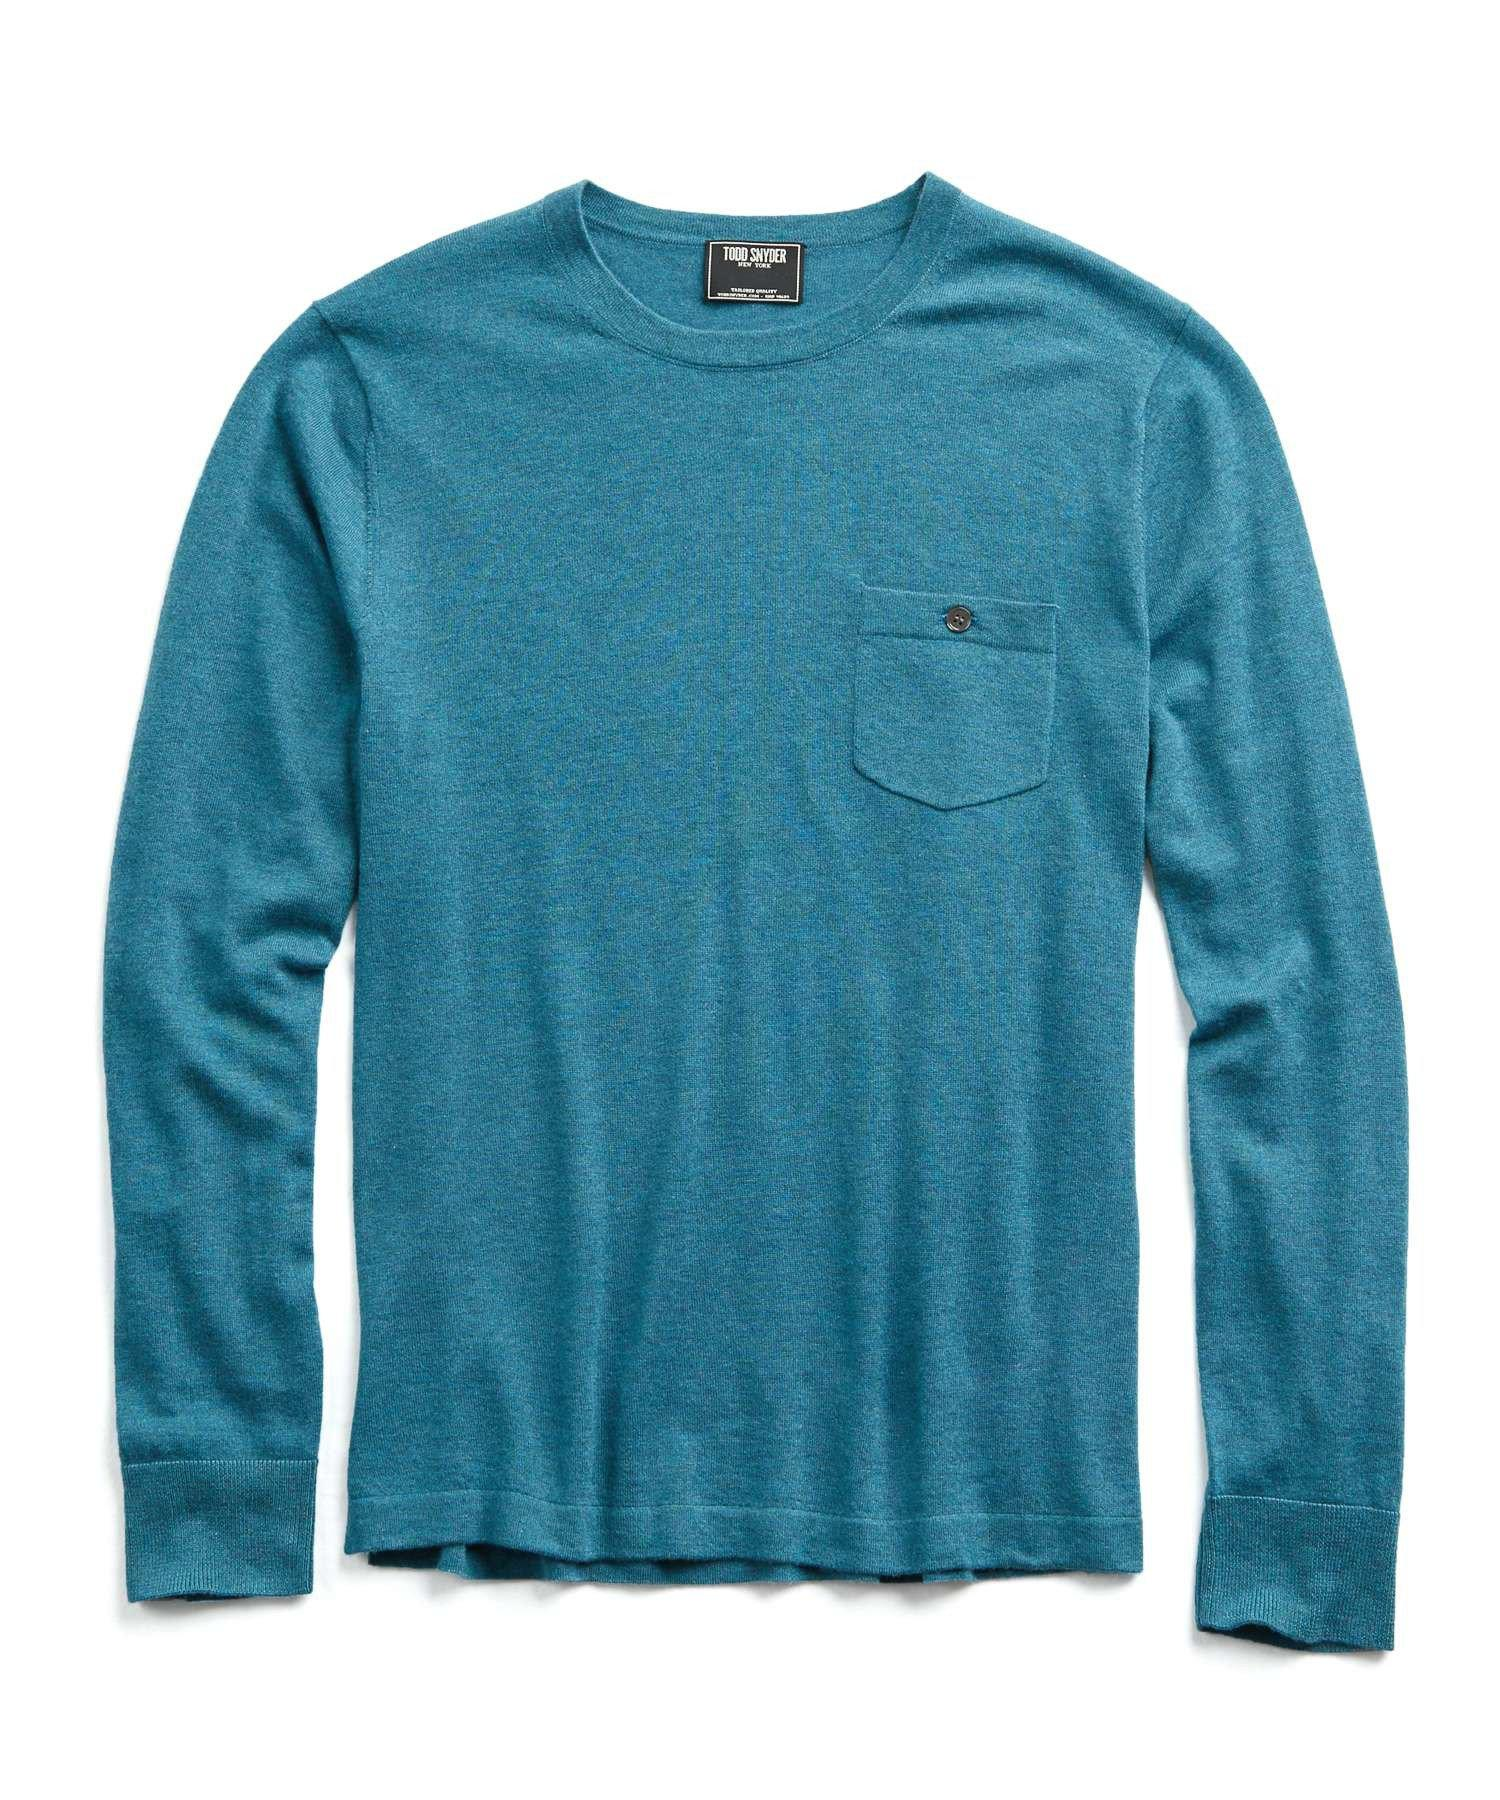 f5b436cbea2c31 Lyst - Todd Snyder Cashmere T-shirt Sweater In Turquoise in Blue for Men